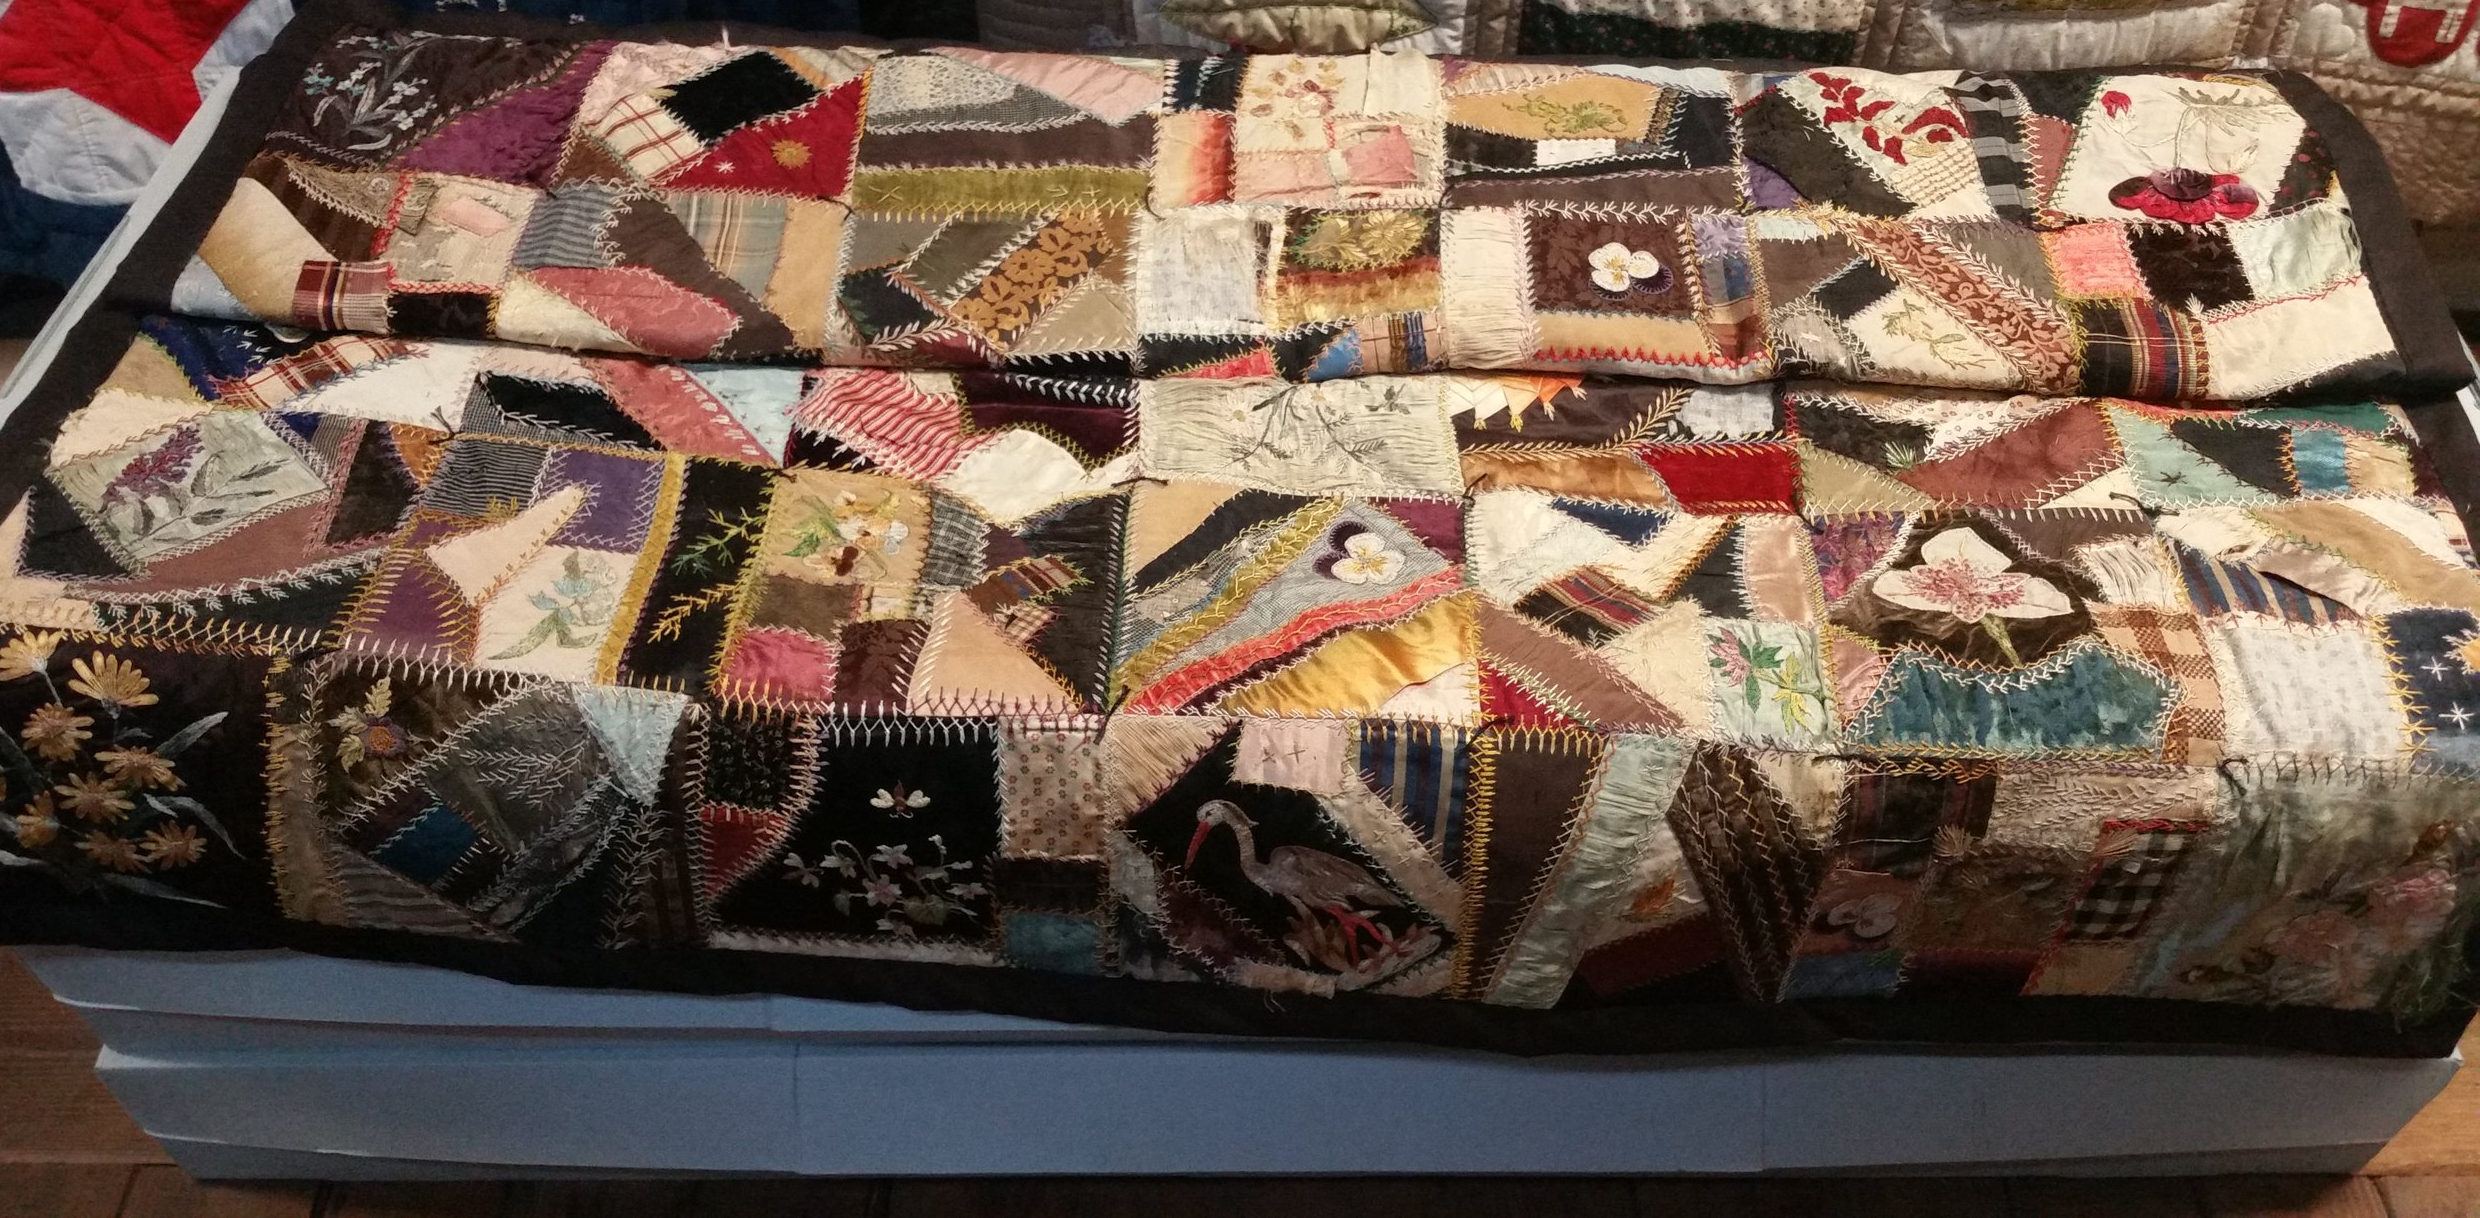 This was an extremely fancy appliqued quilt.